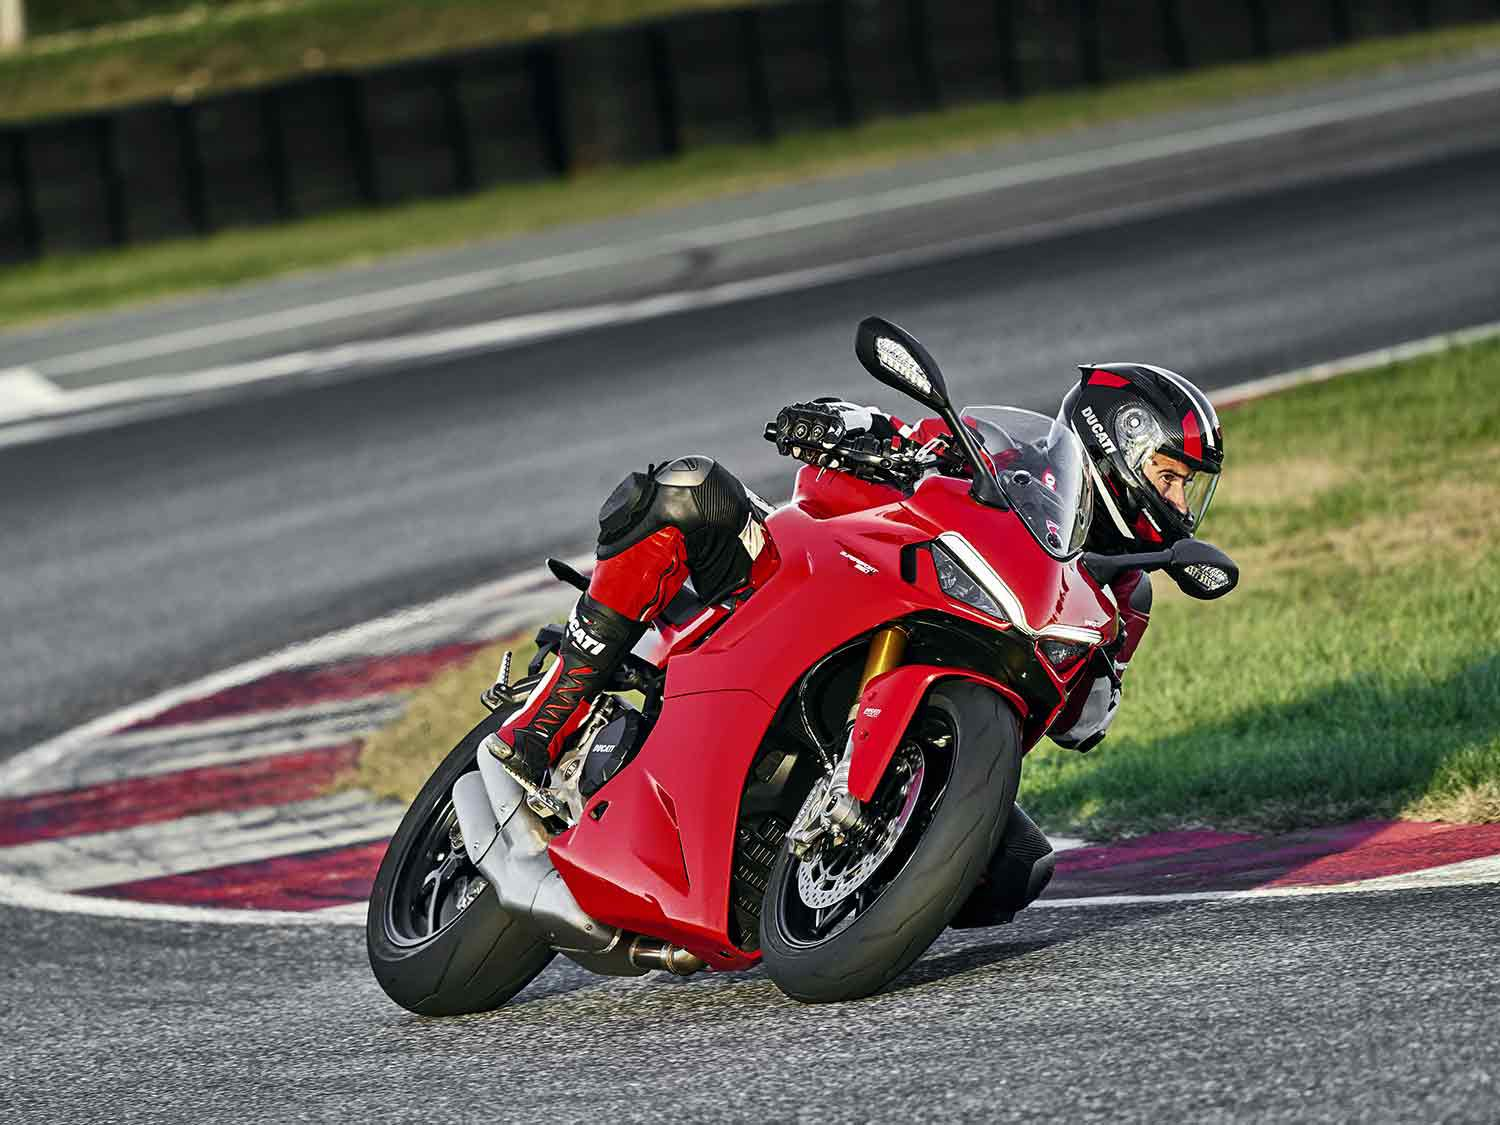 The 2021 SuperSport 950 puts out 110 hp and 68 pound-feet of torque thanks to a 937cc Testastretta V-twin.